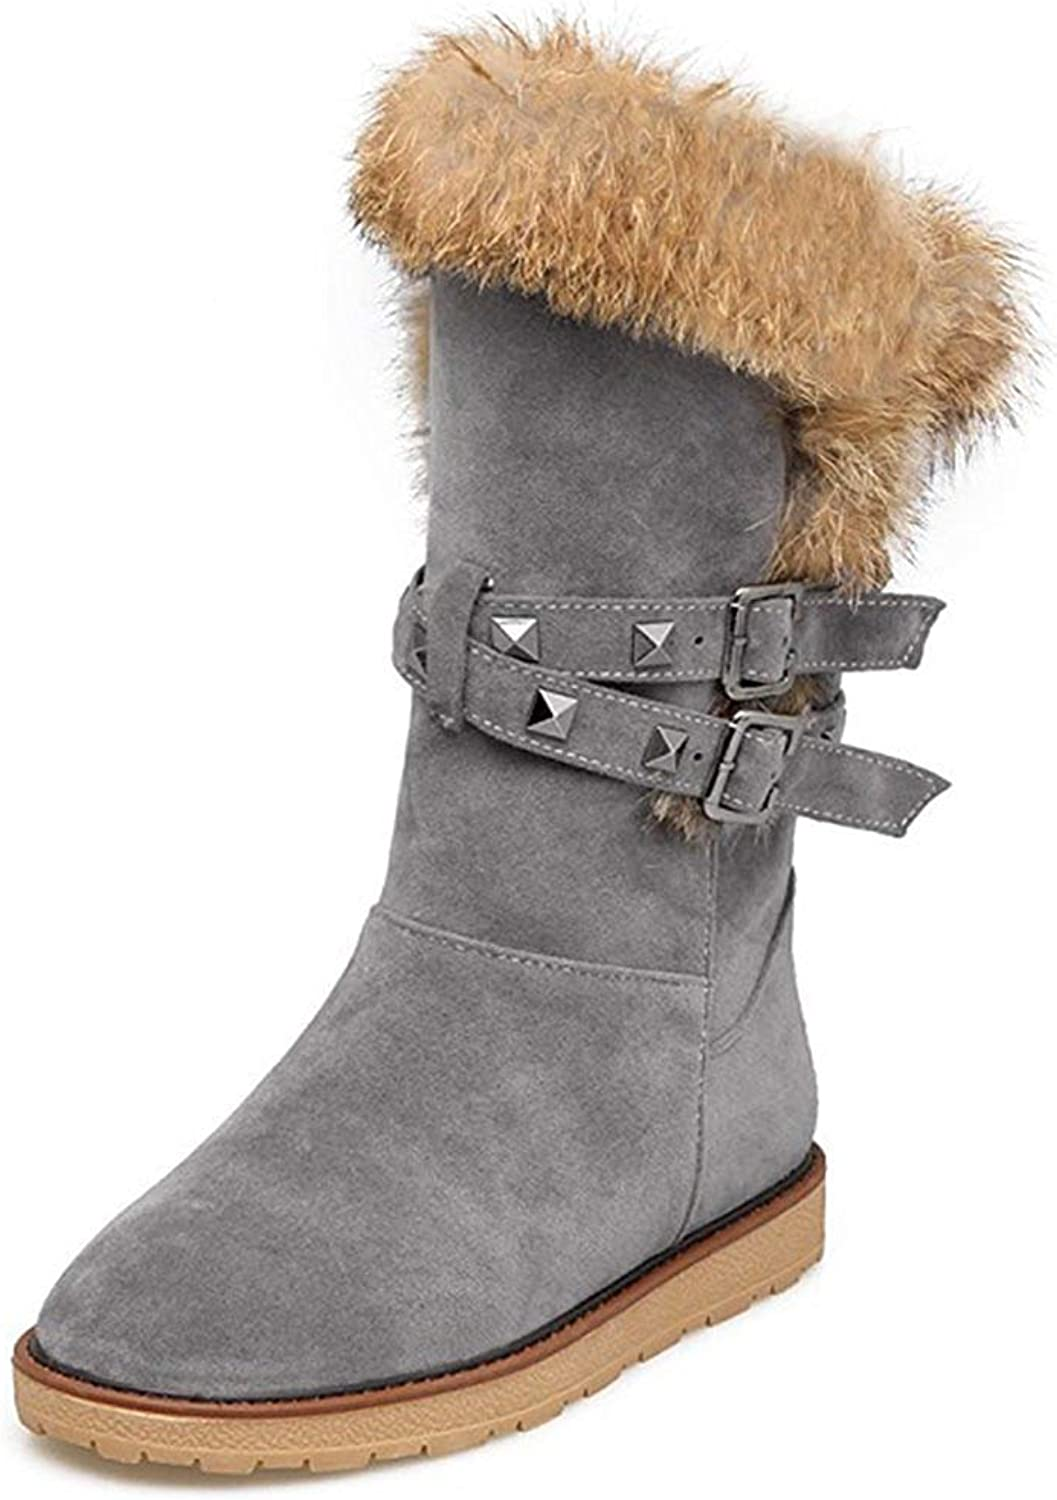 Ghssheh Women's Warm Faux Suede Fur Rivets Studded Straps Buckle Round Toe Round Toe Flats Slip in Mid Calf Snow Boots Apricot 4 M US